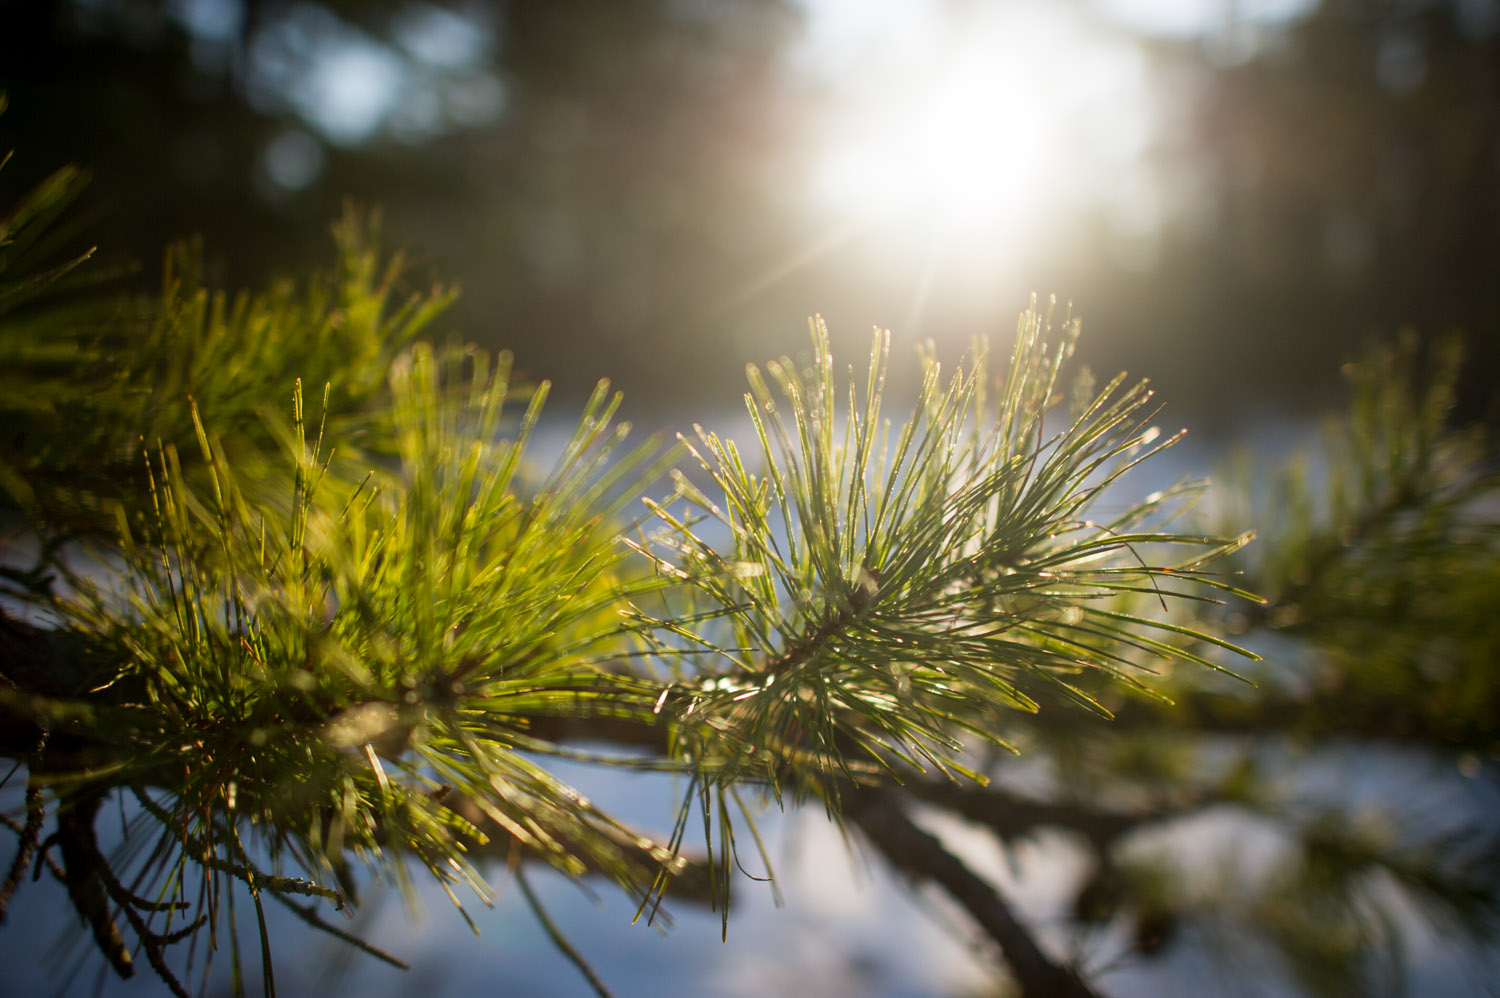 The only color in the pine barrens this time of year was the bright green of the pine branches.